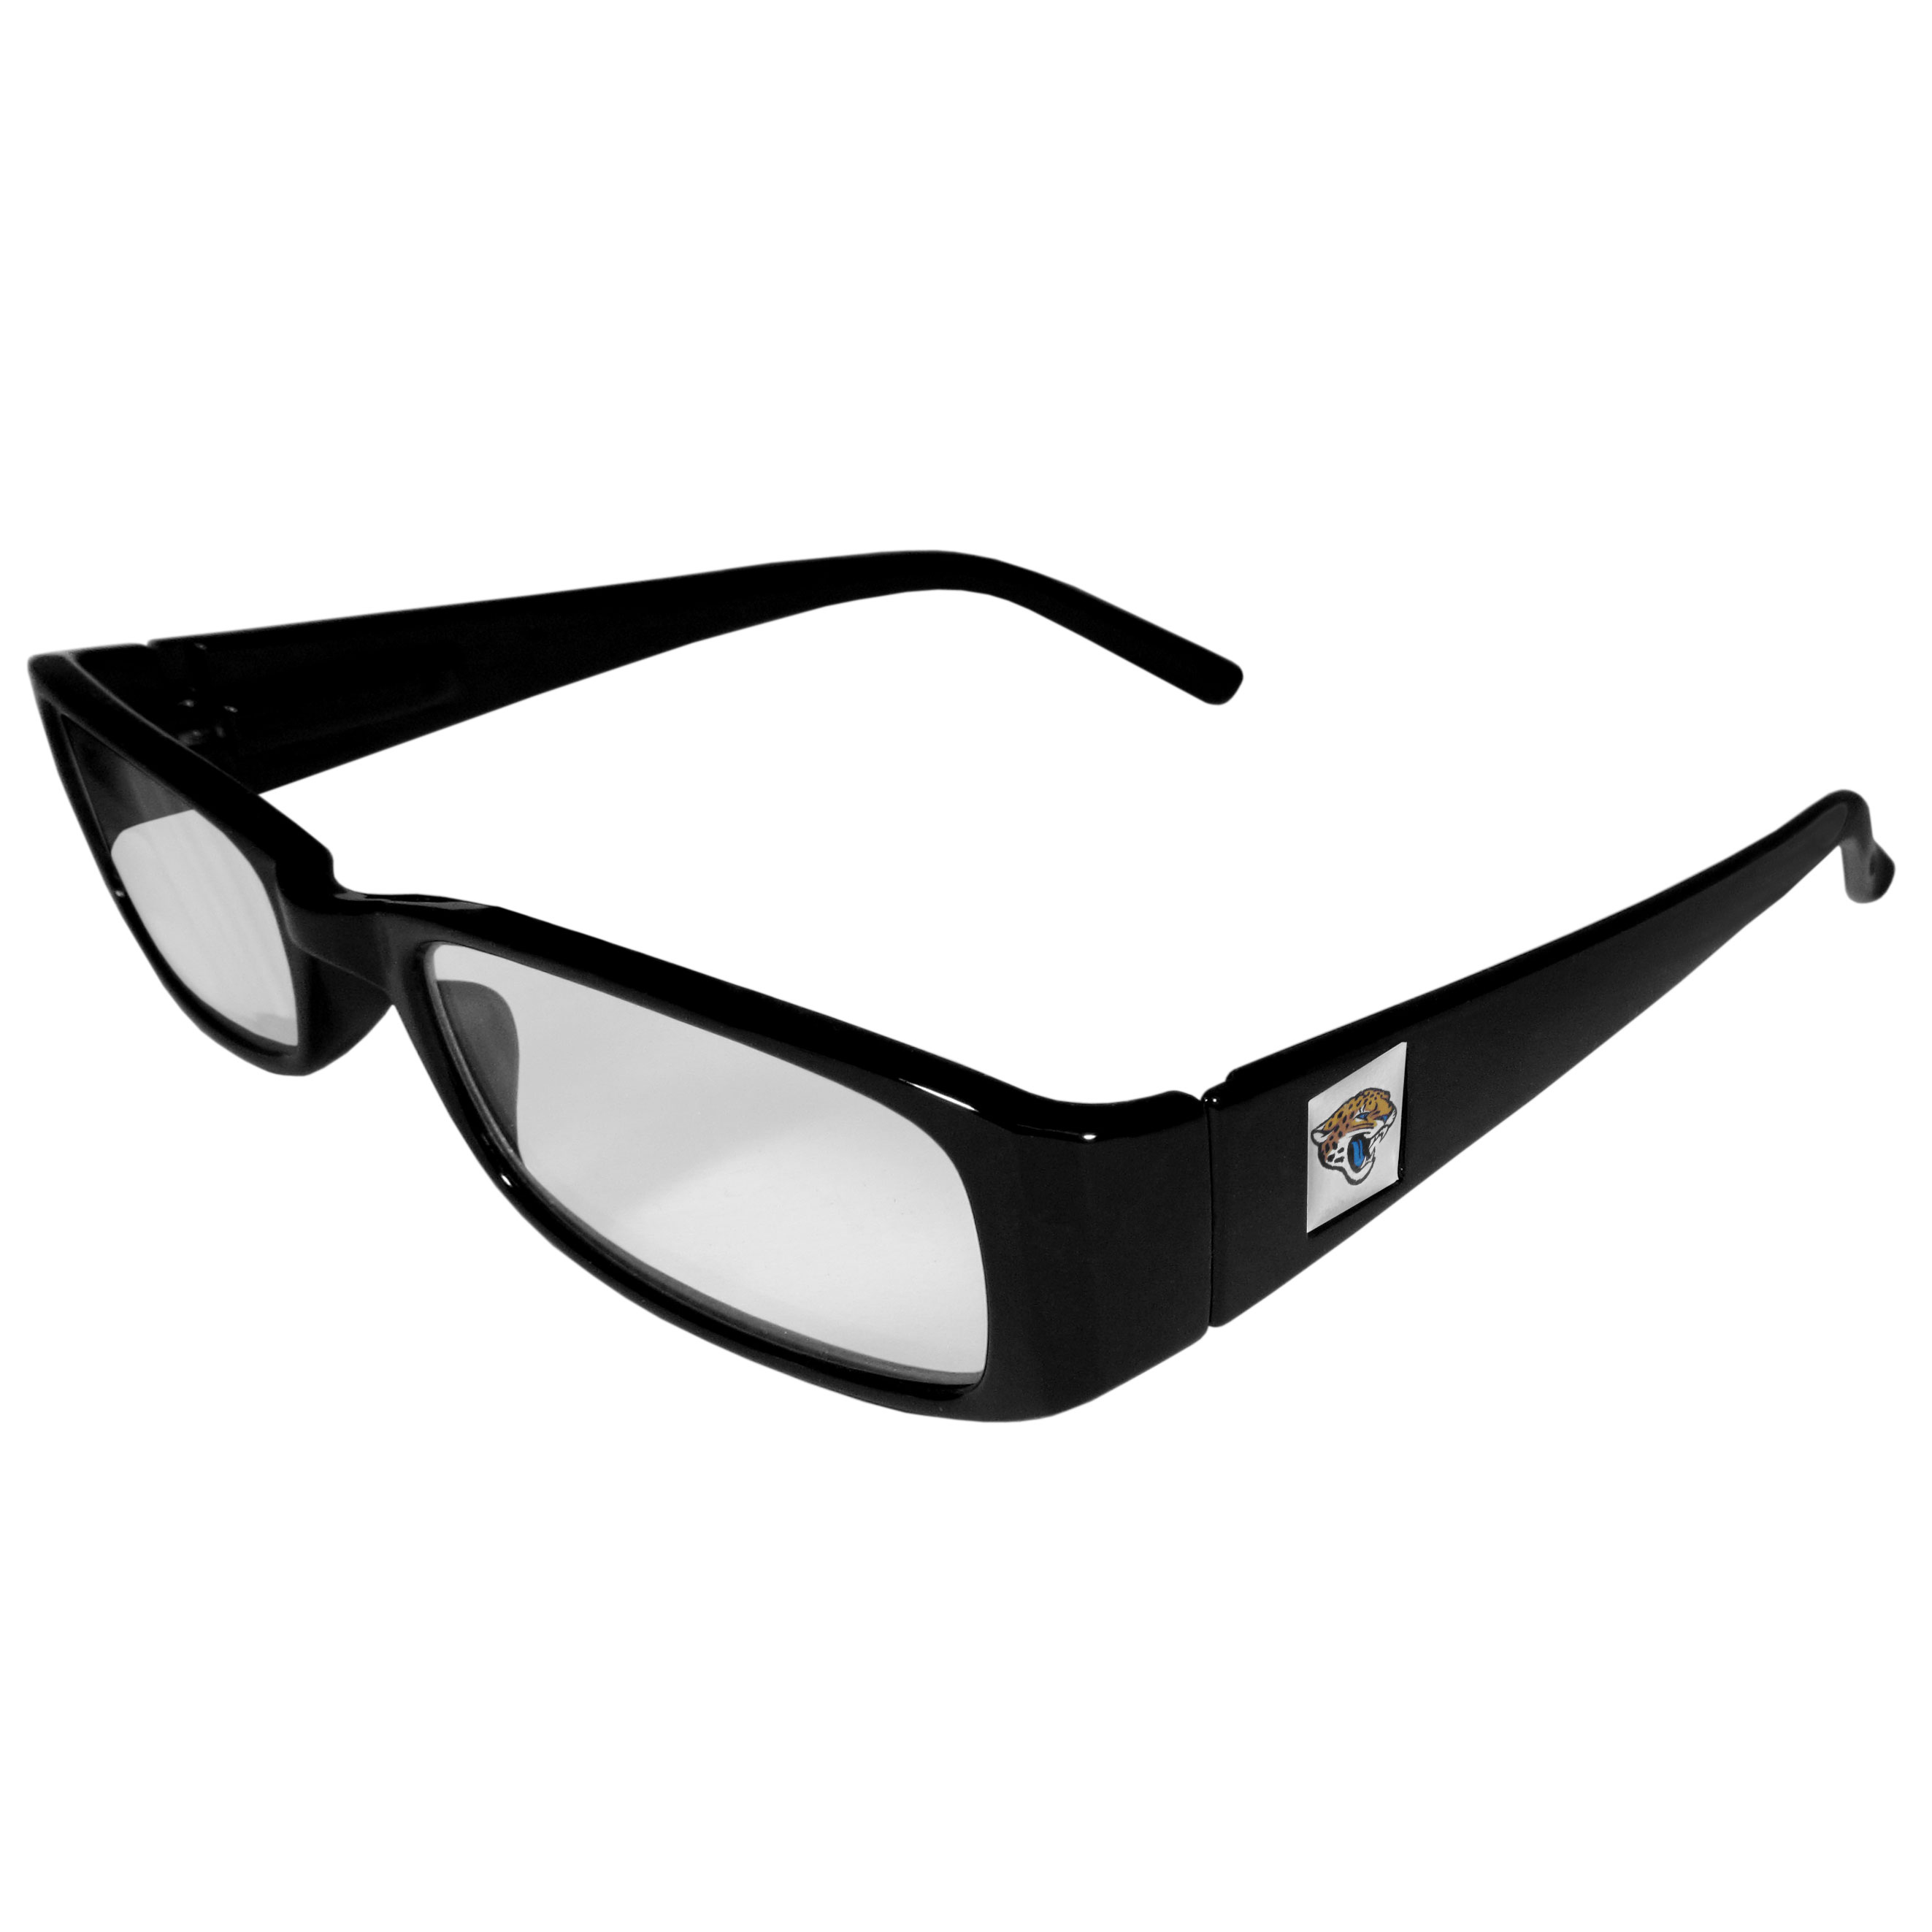 Jacksonville Jaguars Black Reading Glasses +1.25 - Our Jacksonville Jaguars reading glasses are 5.25 inches wide and feature the team logo on each arm. Magnification Power 1.25